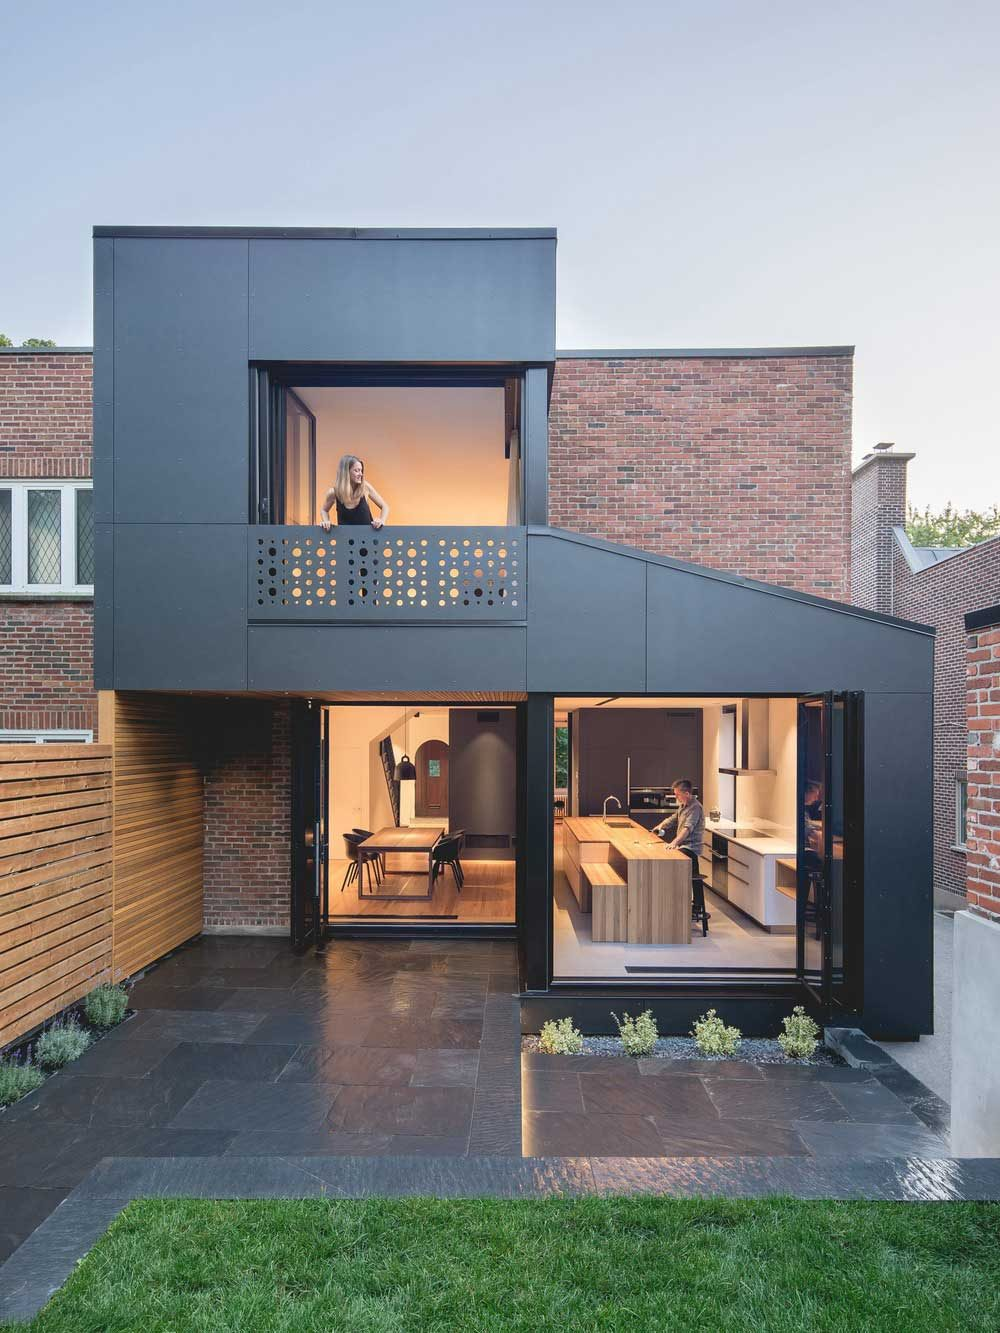 Modern Home Nda By No 555 Architectural Design Office: Home Extensions: House Addition Ideas